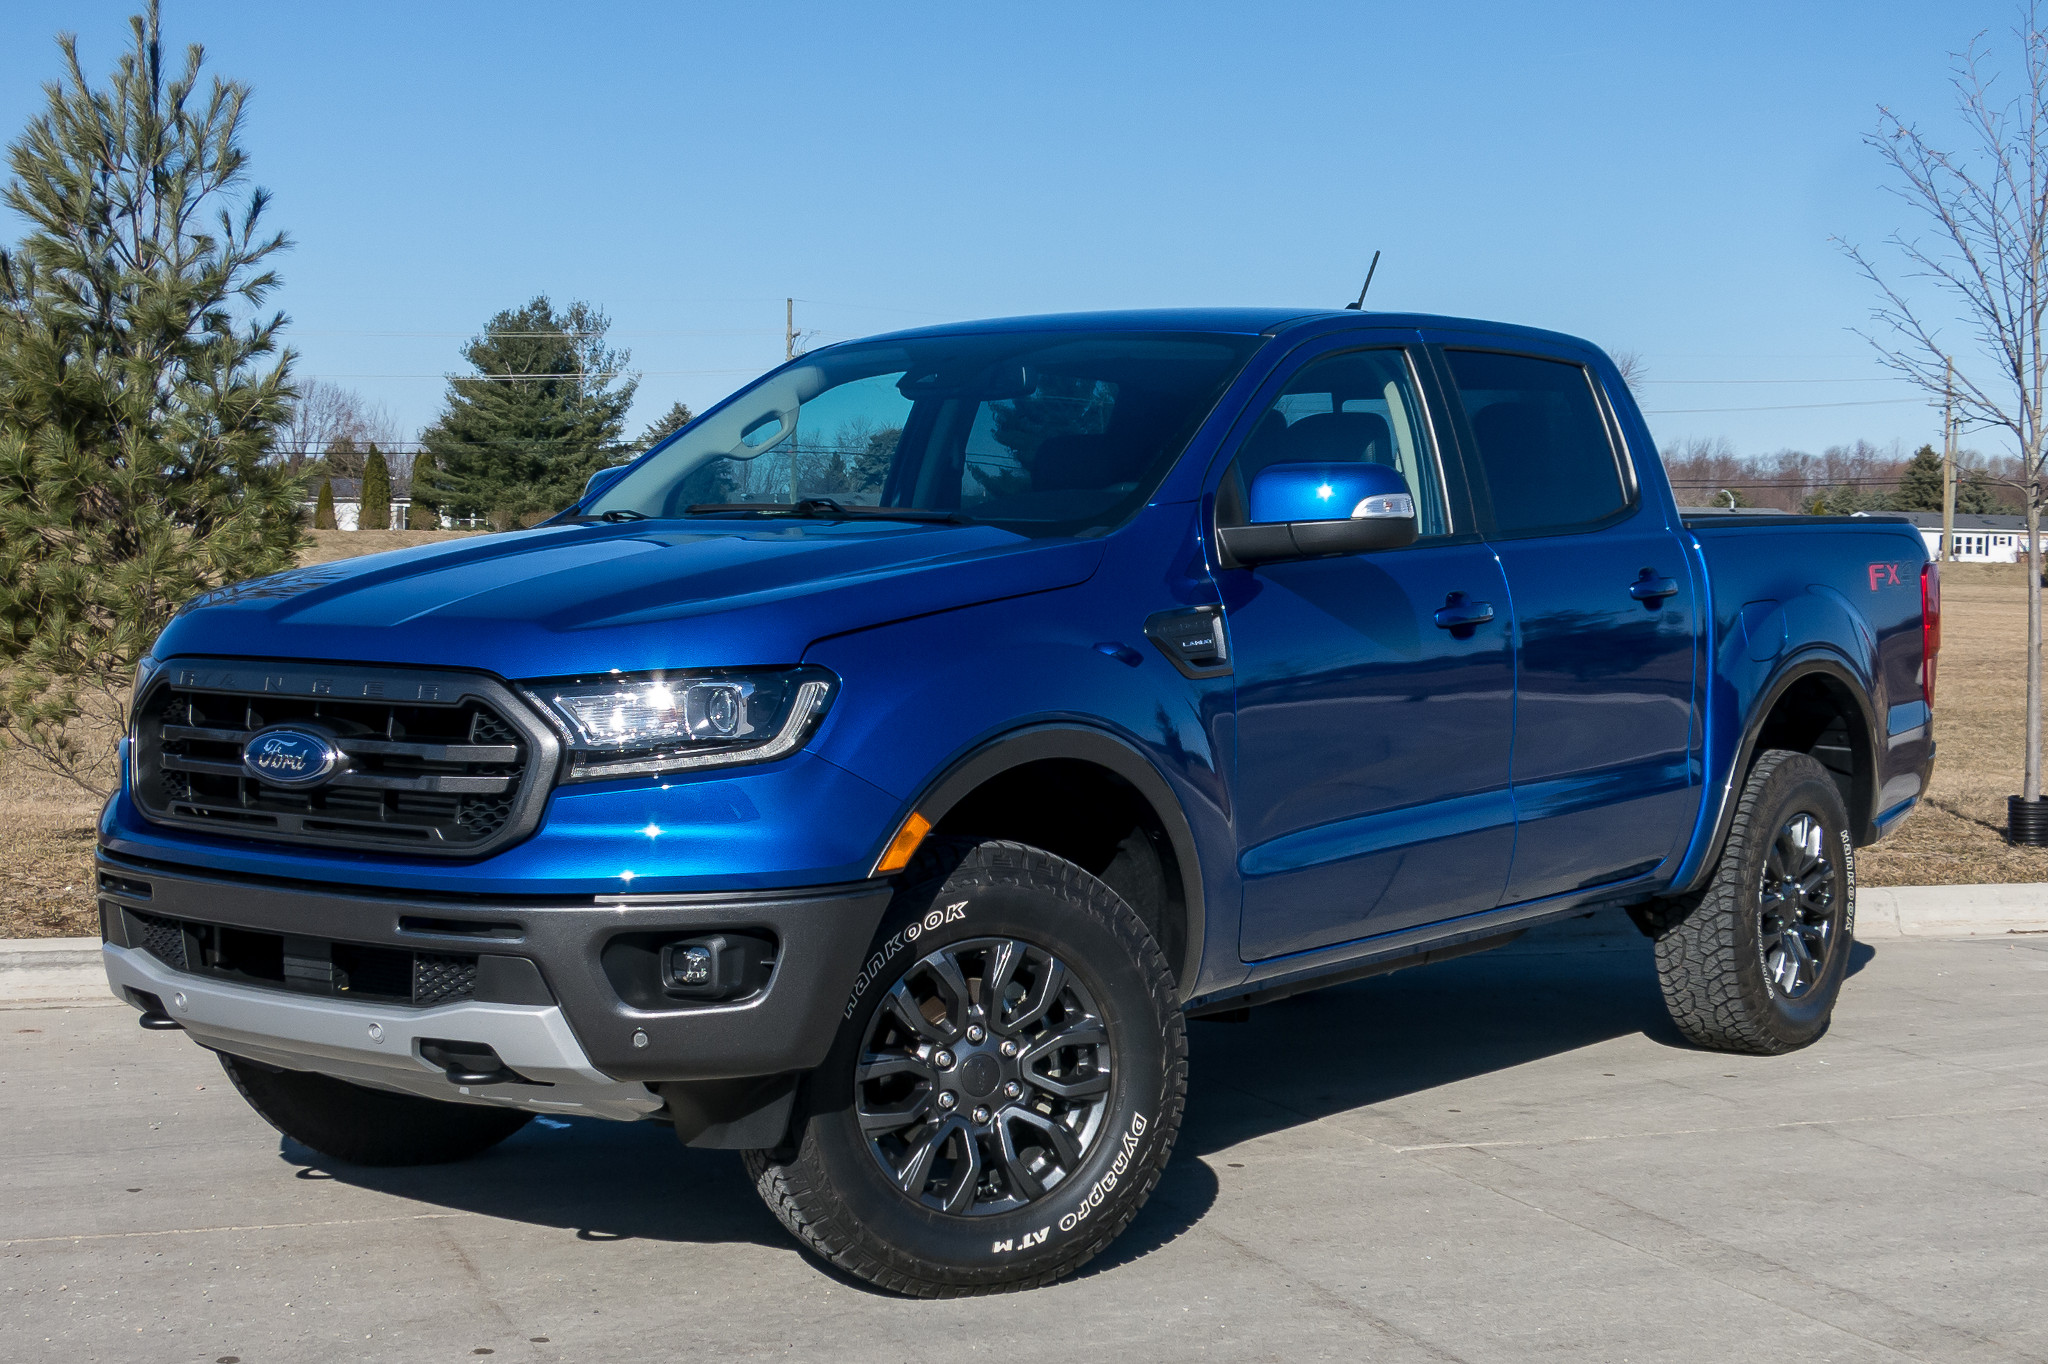 2019 Ford Ranger Review: It's New to You